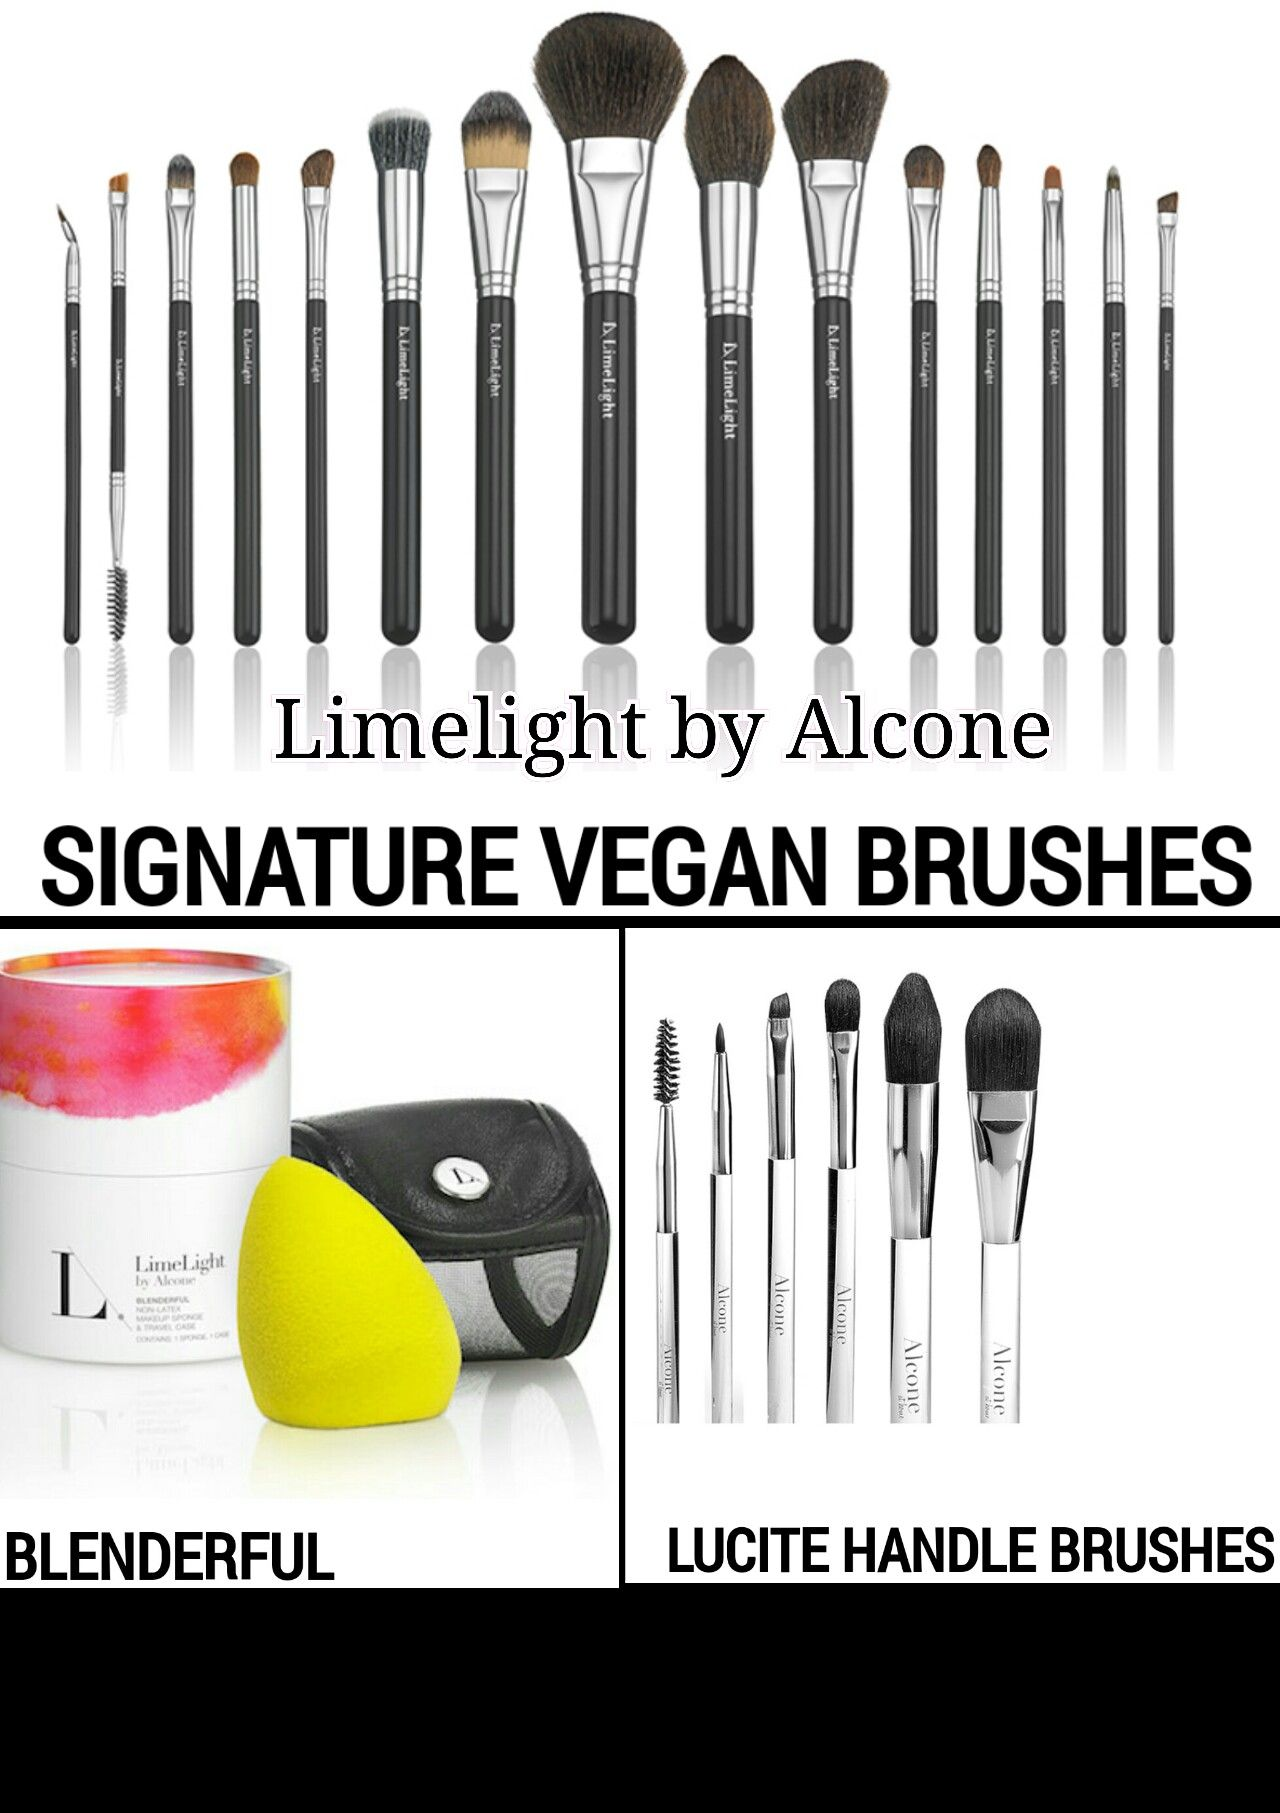 Looking for the perfect Vegan makeup brushes? Look no